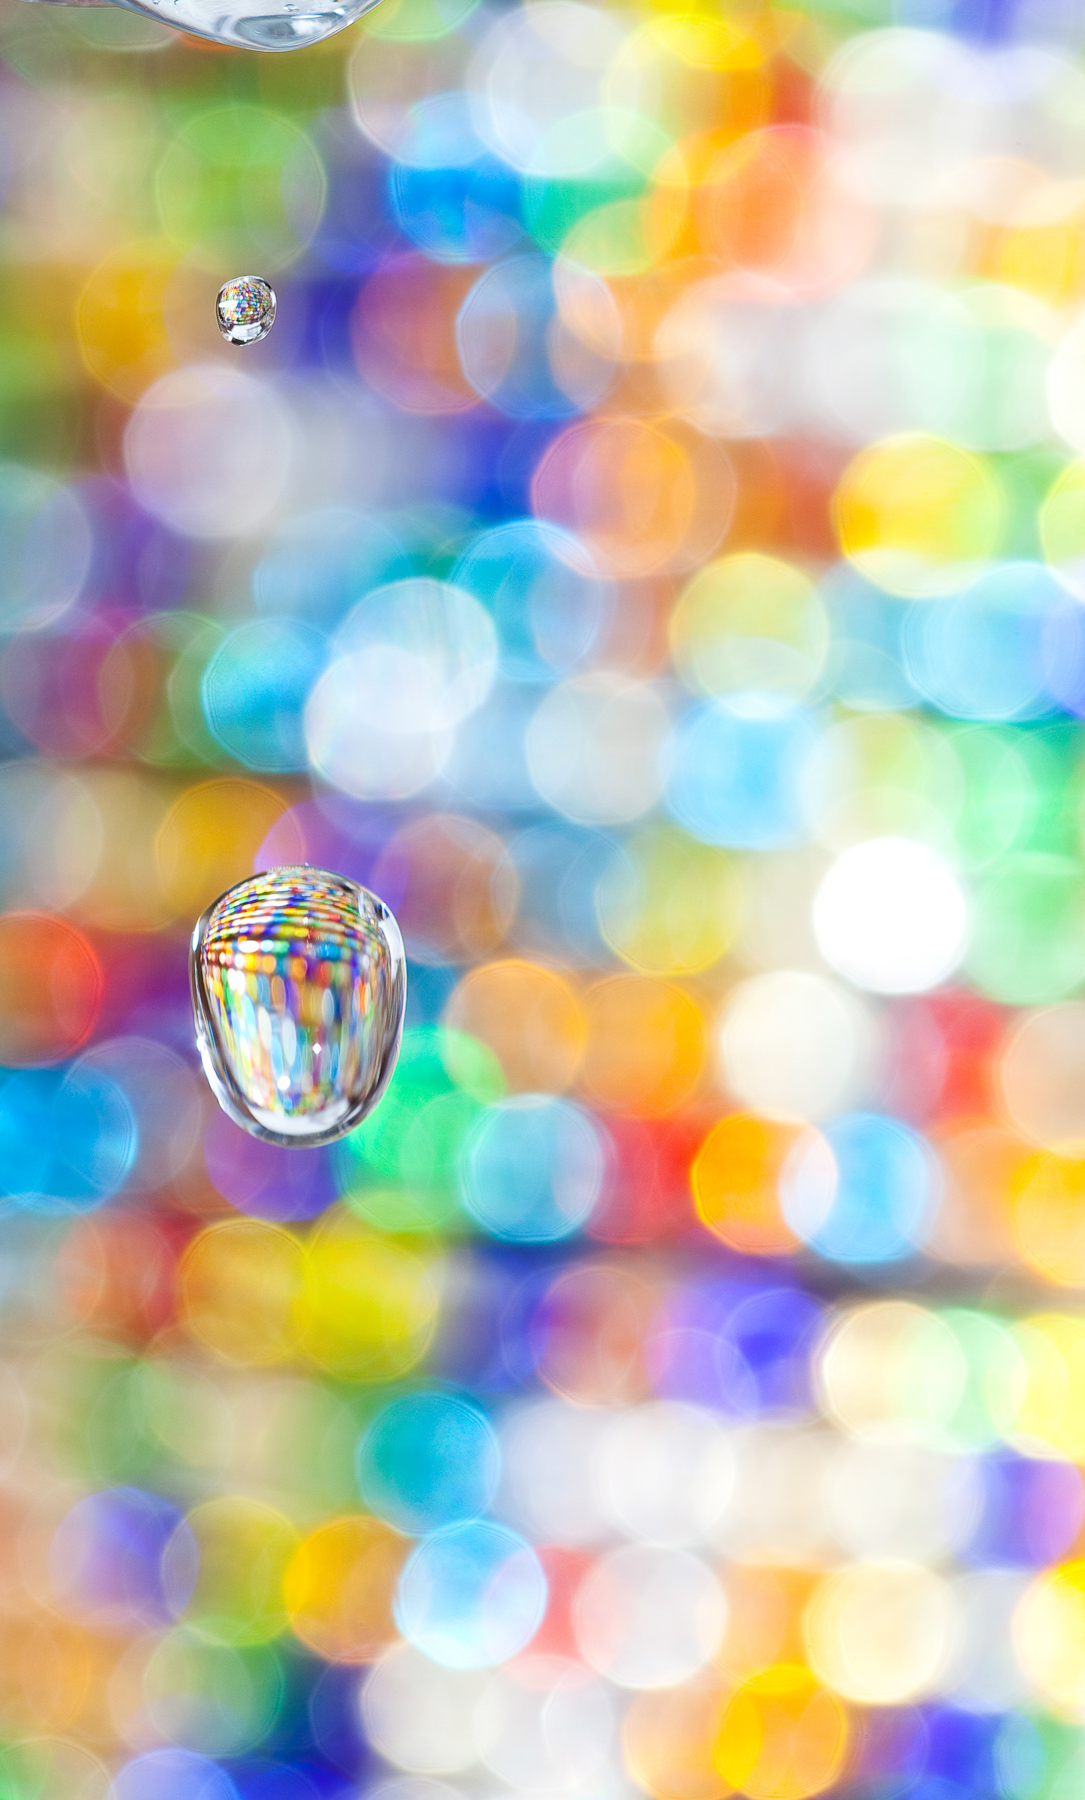 Macro Fine Art photo of a single water drop in the air refracting colored beads in the background.